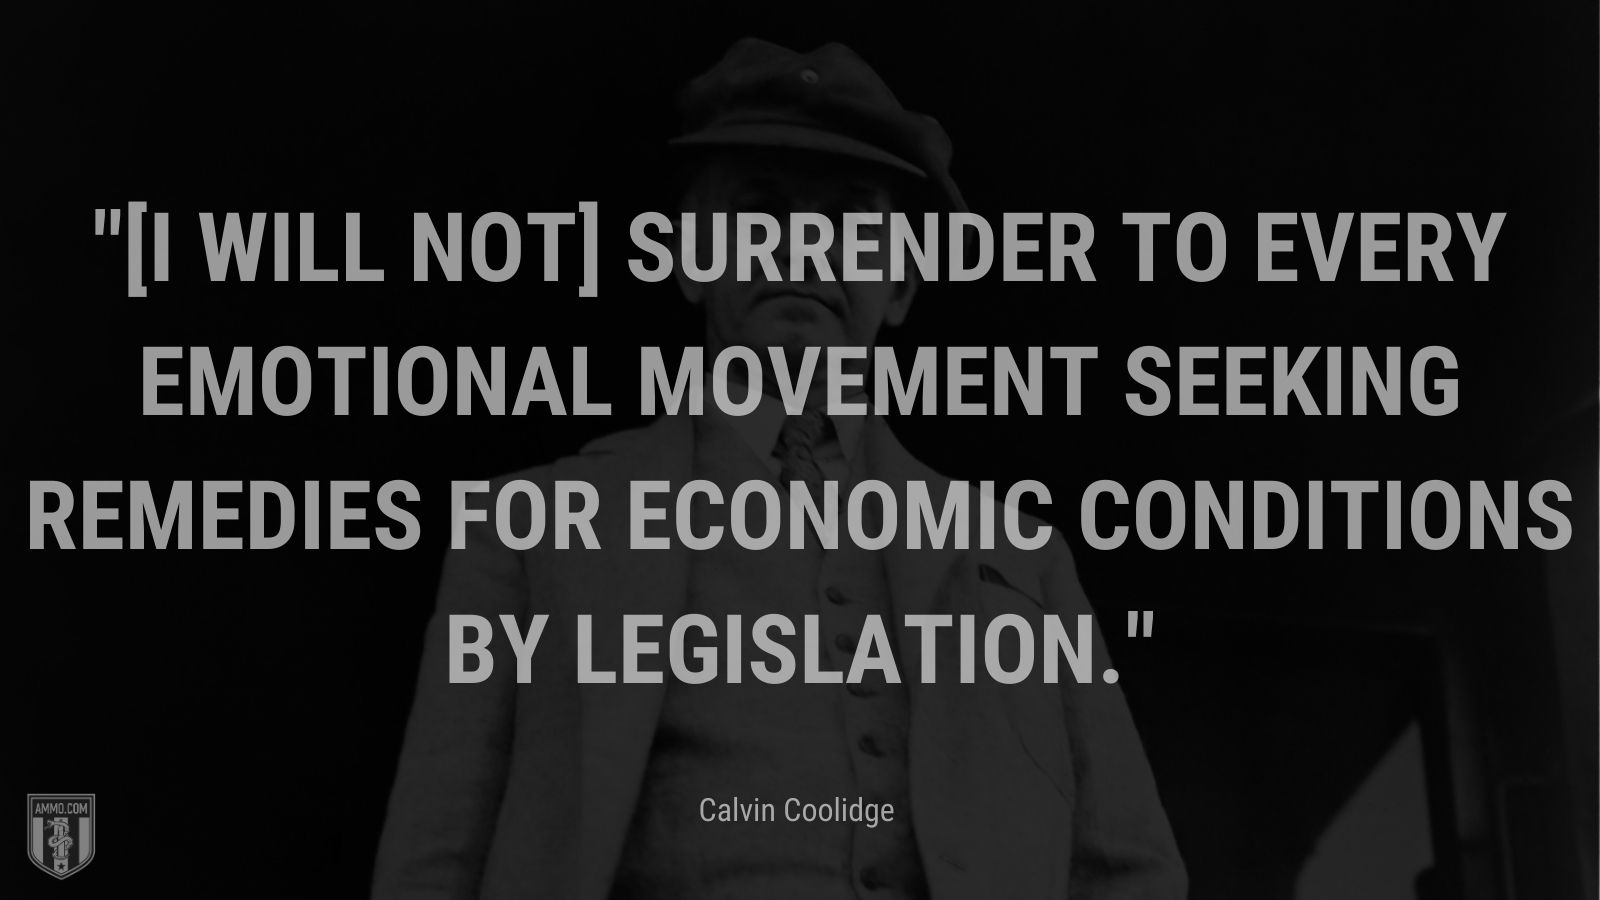 """""""[I will not] surrender to every emotional movement seeking remedies for economic conditions by legislation."""" - Calvin Coolidge"""